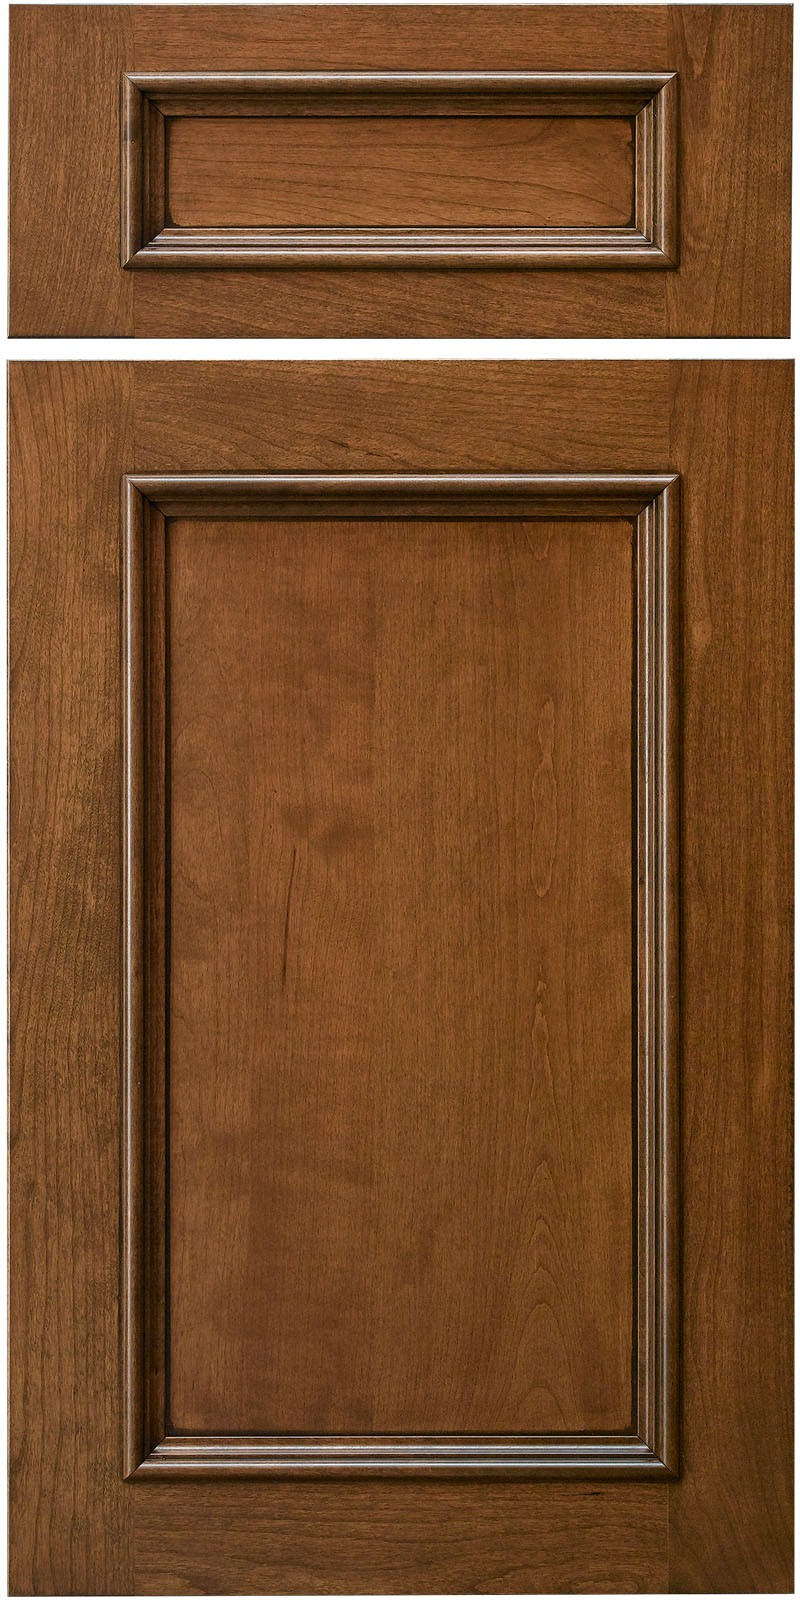 Crp101728 Solid Wood Materials Cabinet Doors